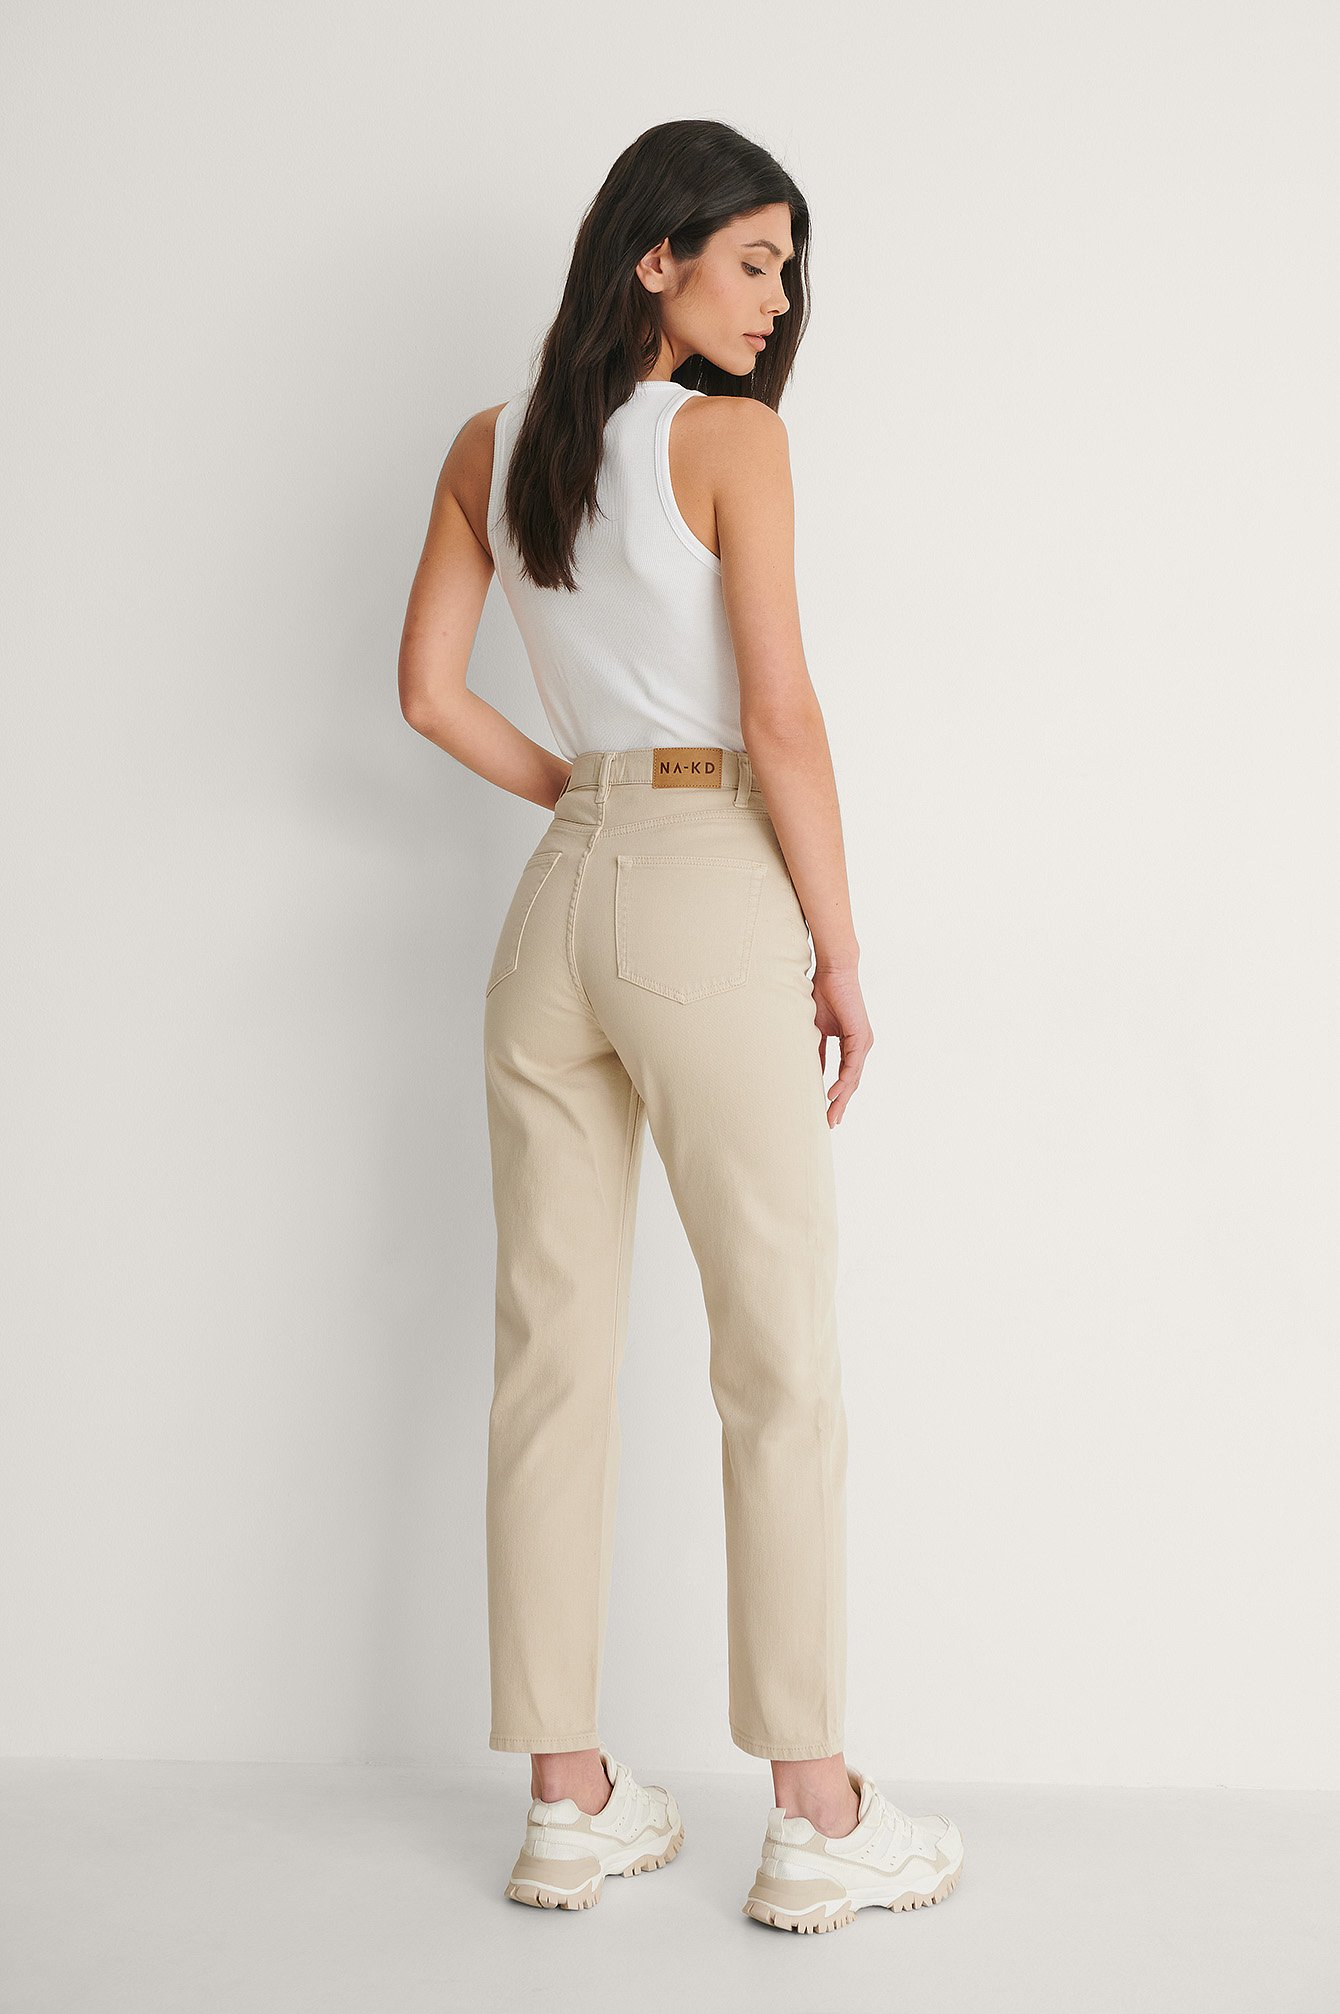 Beige Straight High Waist Jeans